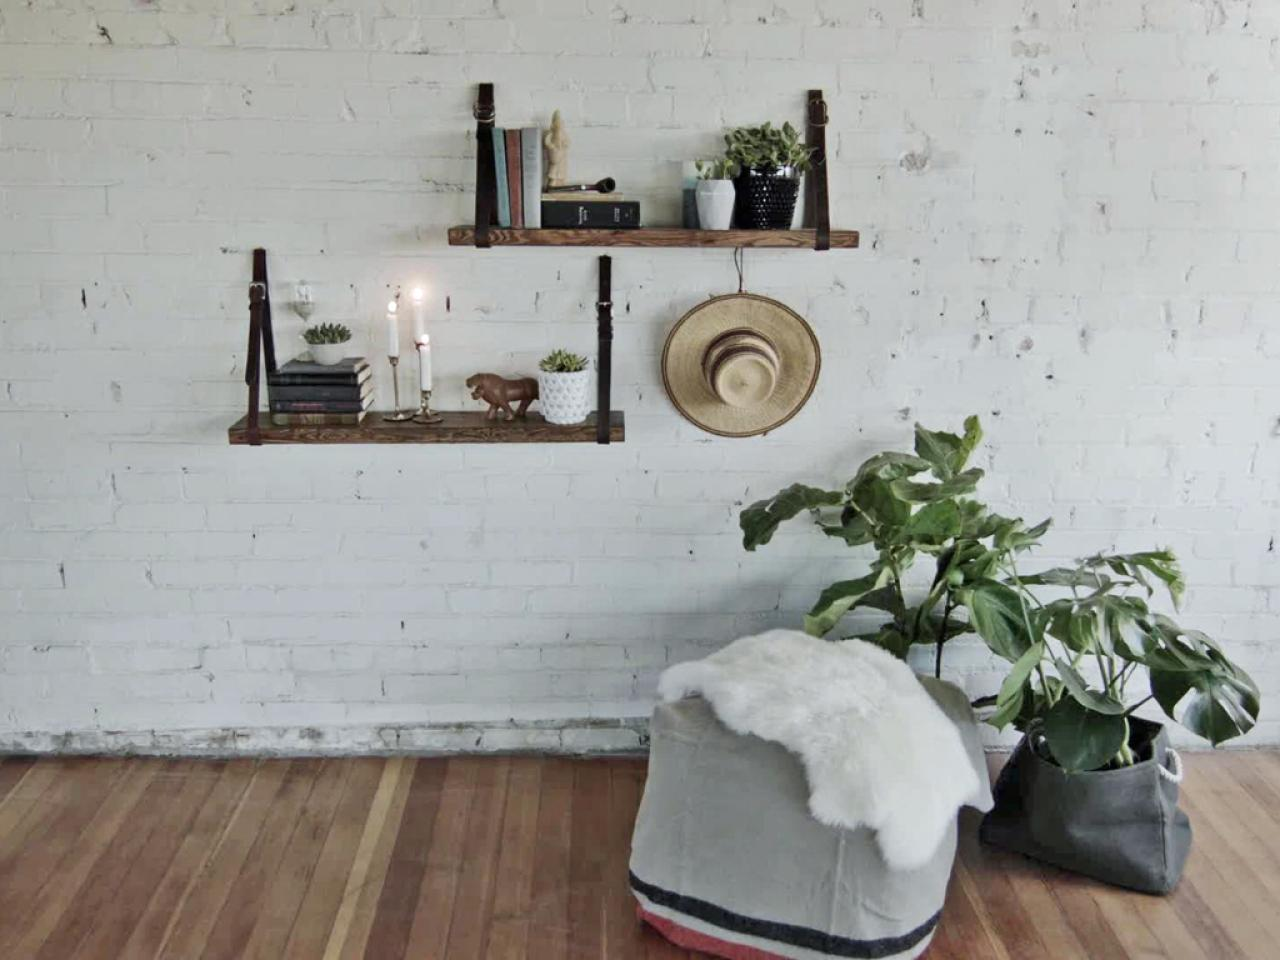 ways decorate with floating shelves decorating master bedroom made from old belts inch glass shelf and ture frames wickes shelving board diy media small space hacks bentwood